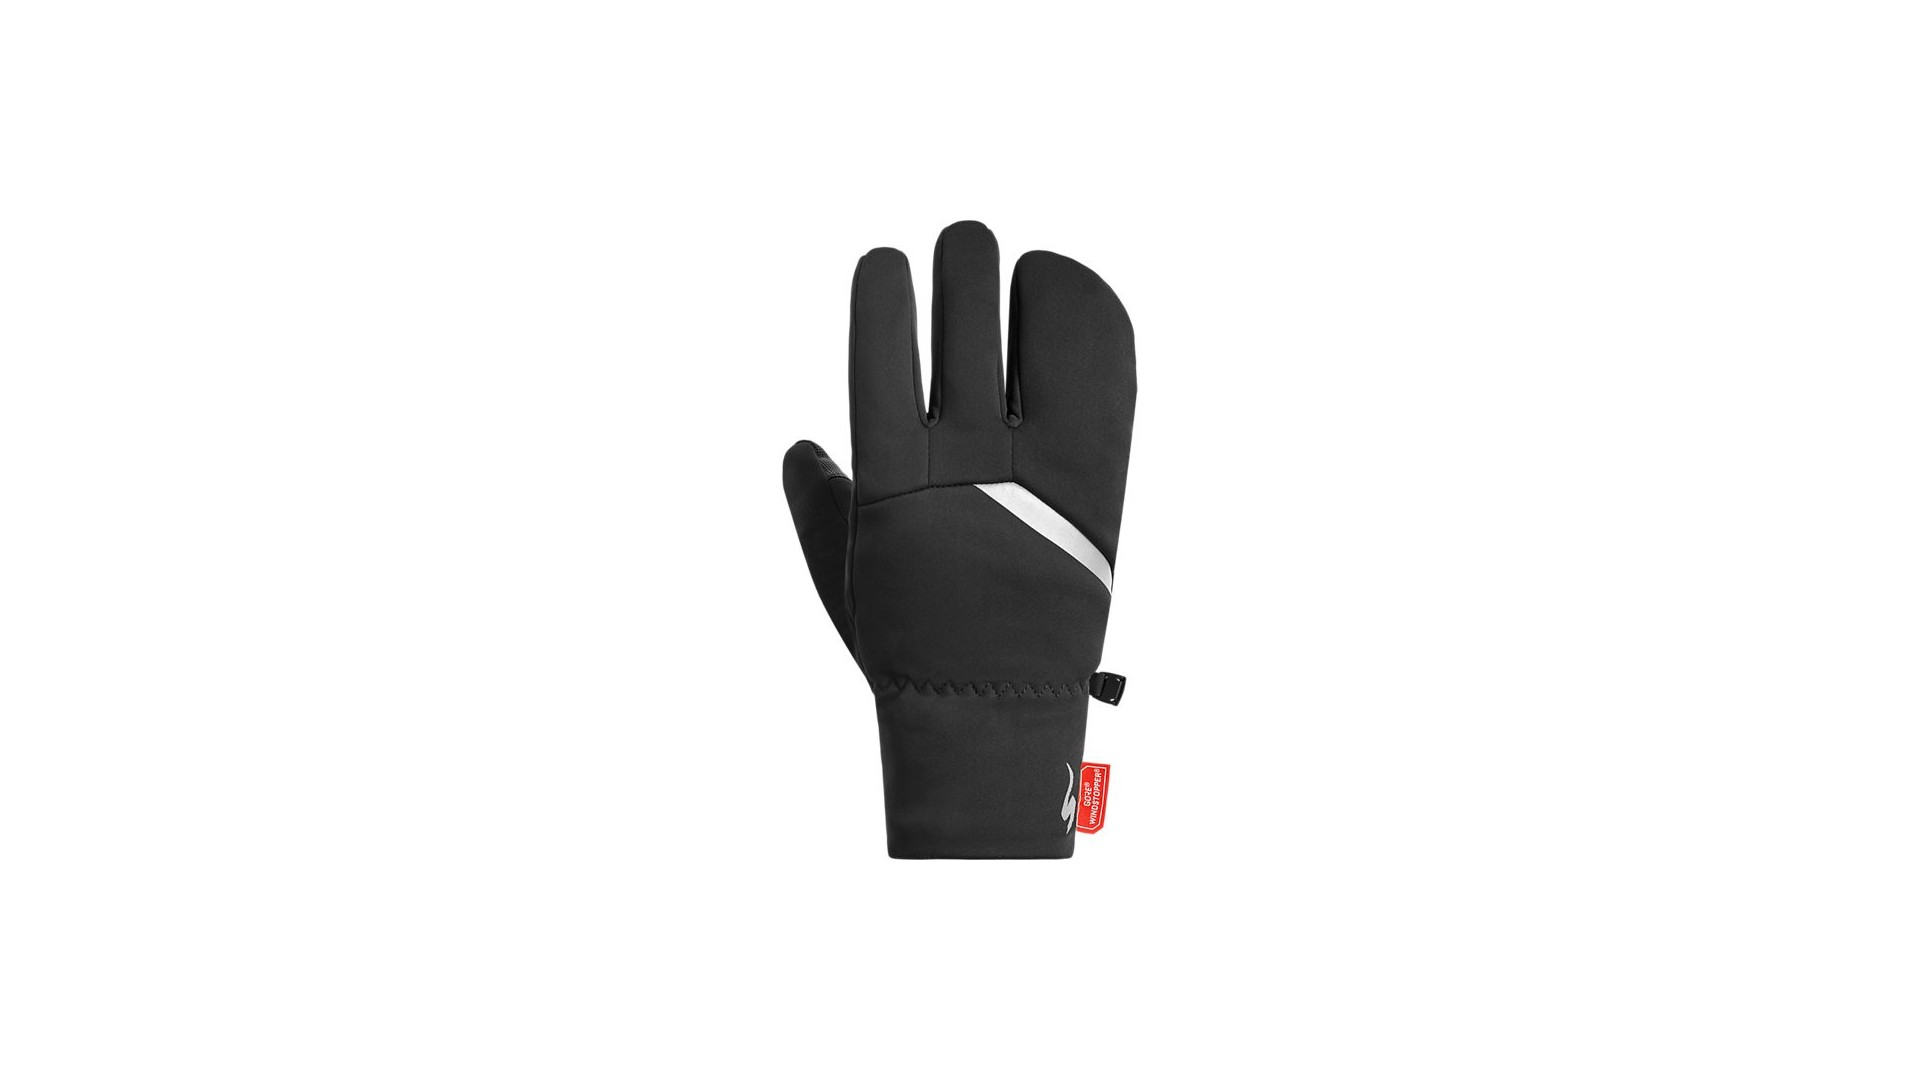 Element 2.0 Guantes LF Specialized Body Geometry Negro 1 IBKBike.es